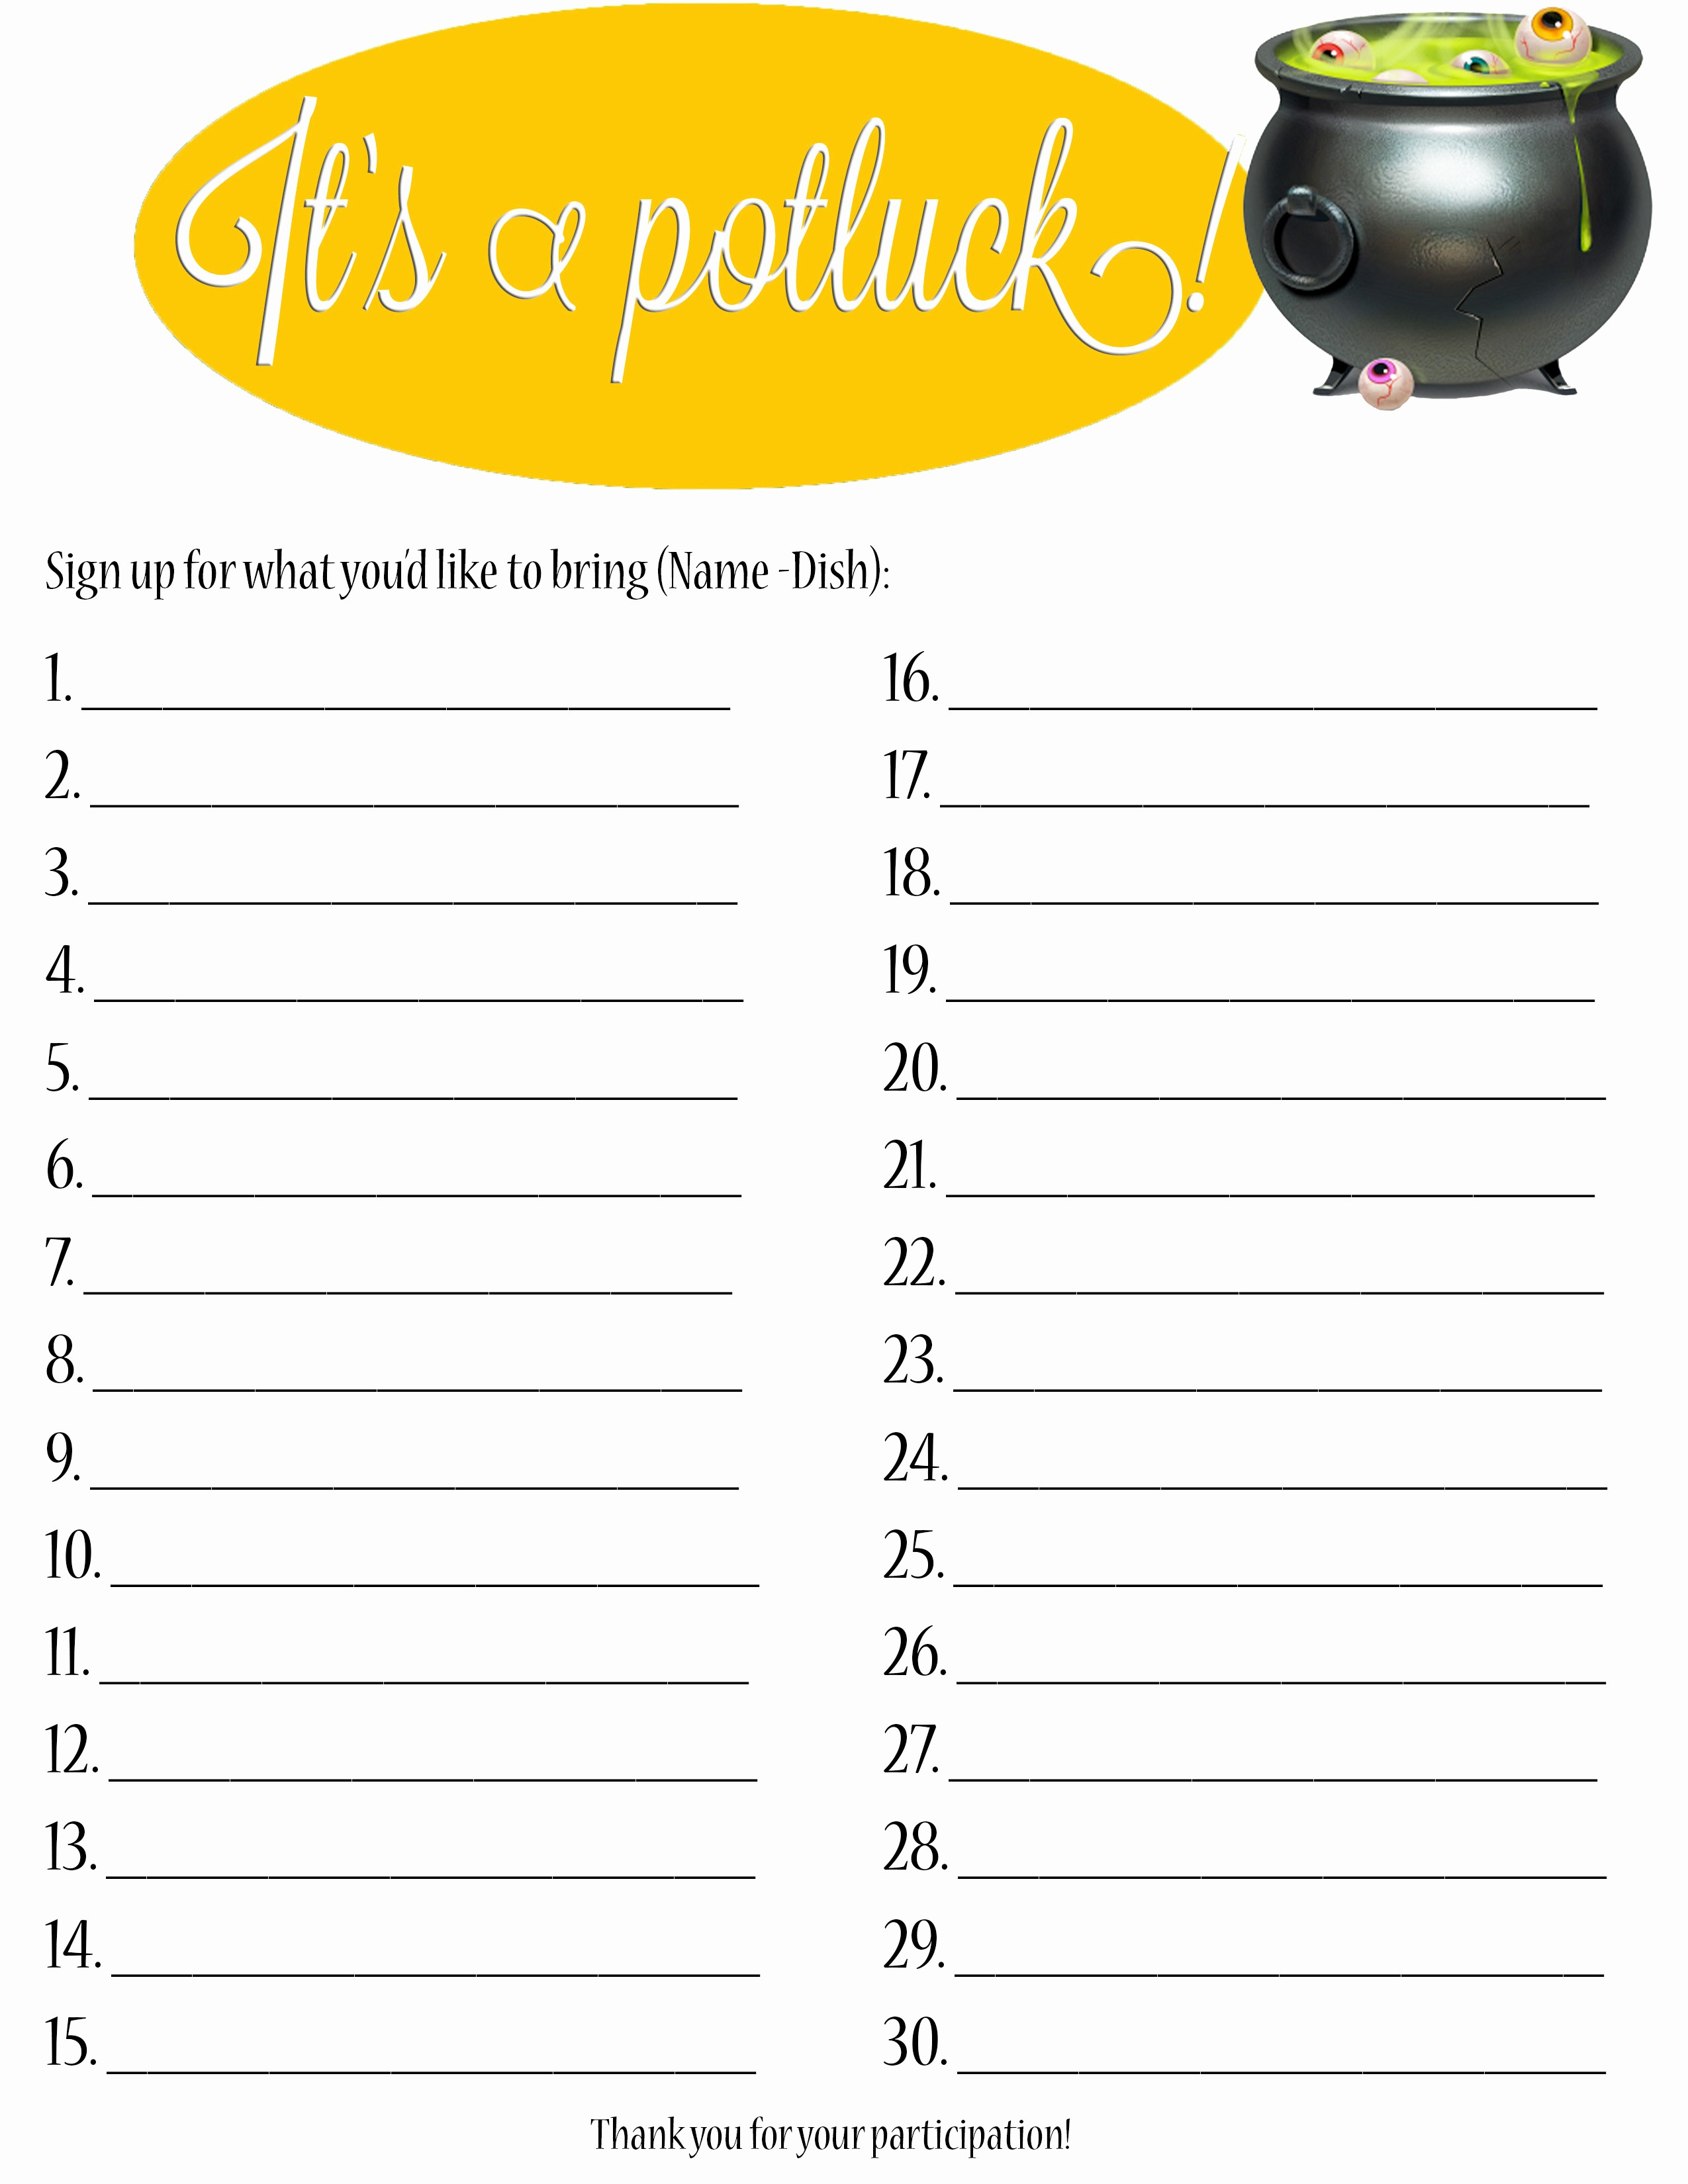 Potluck Invitation Template Free Printable Awesome Thanksgiving Printable Potluck Sign Up Sheets – Happy